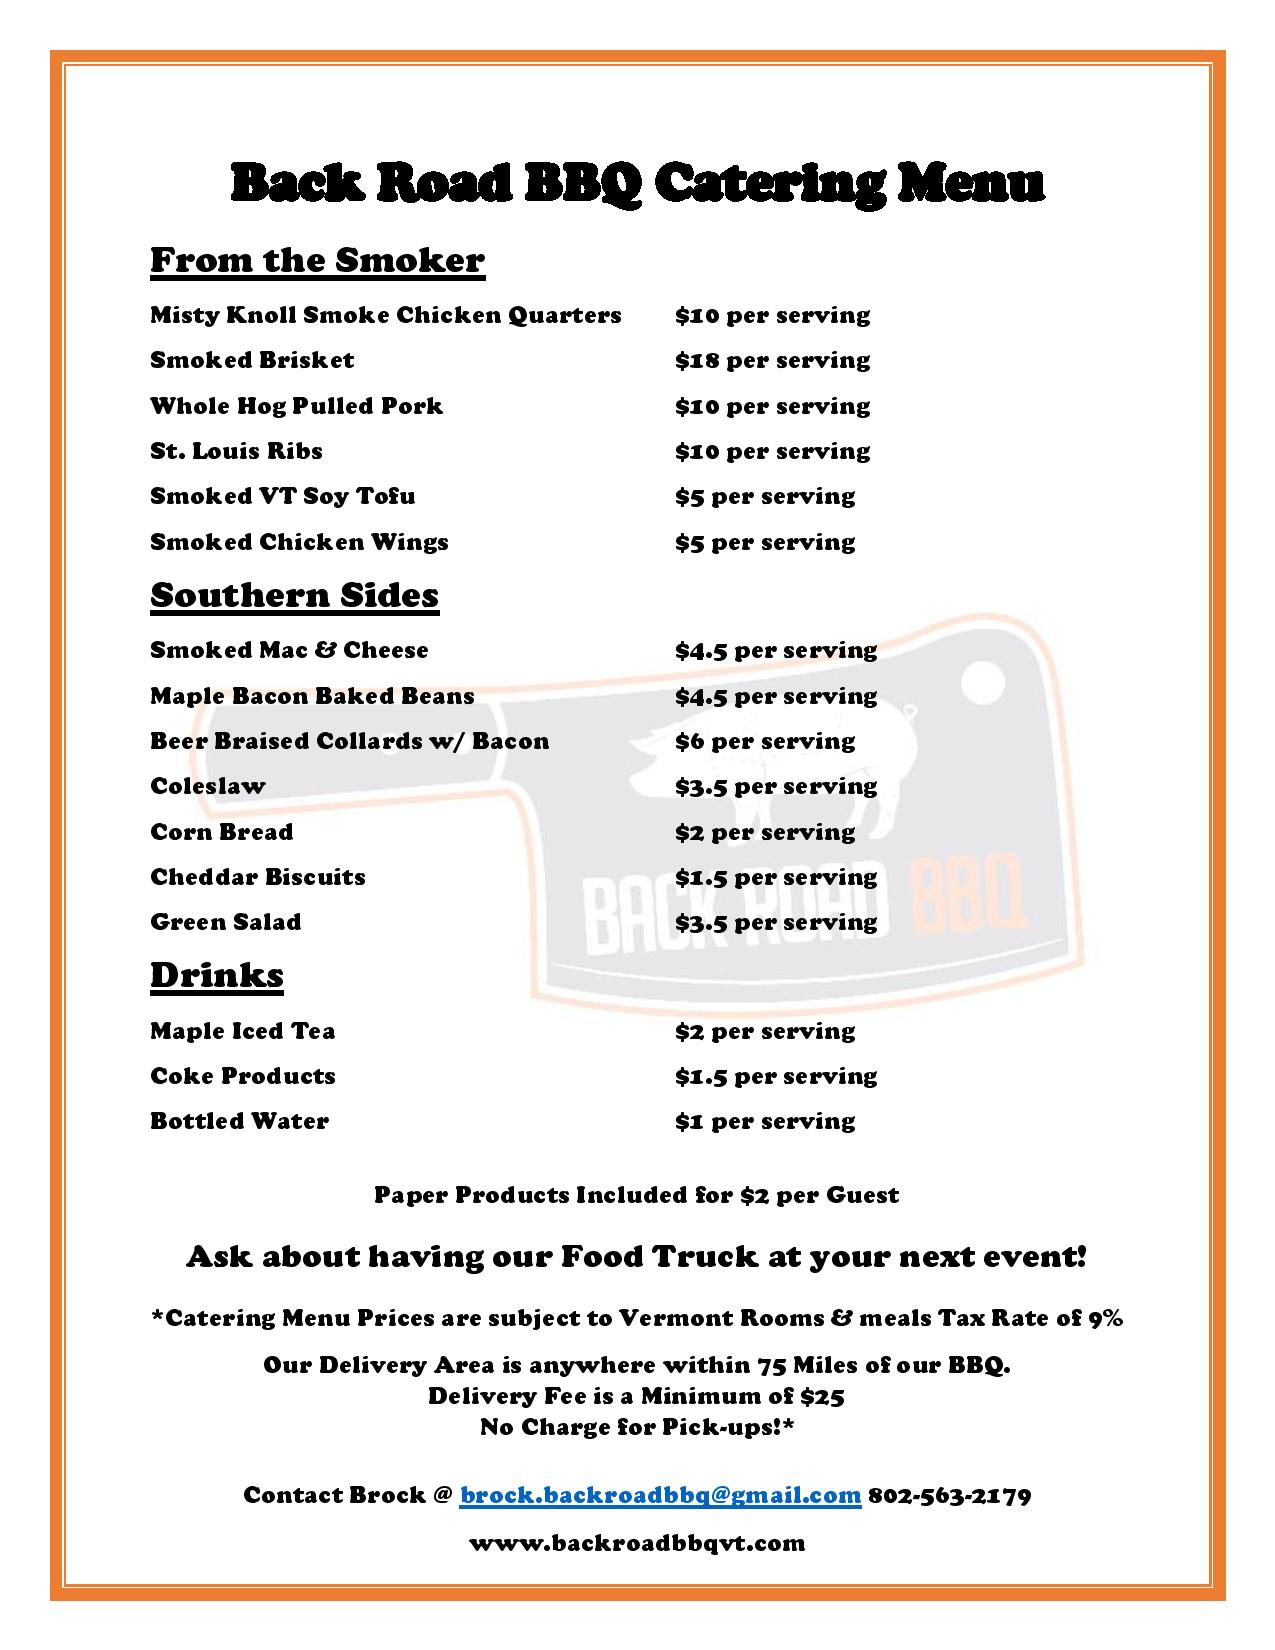 Back Road BBQ Catering Menu-page-001.jpg